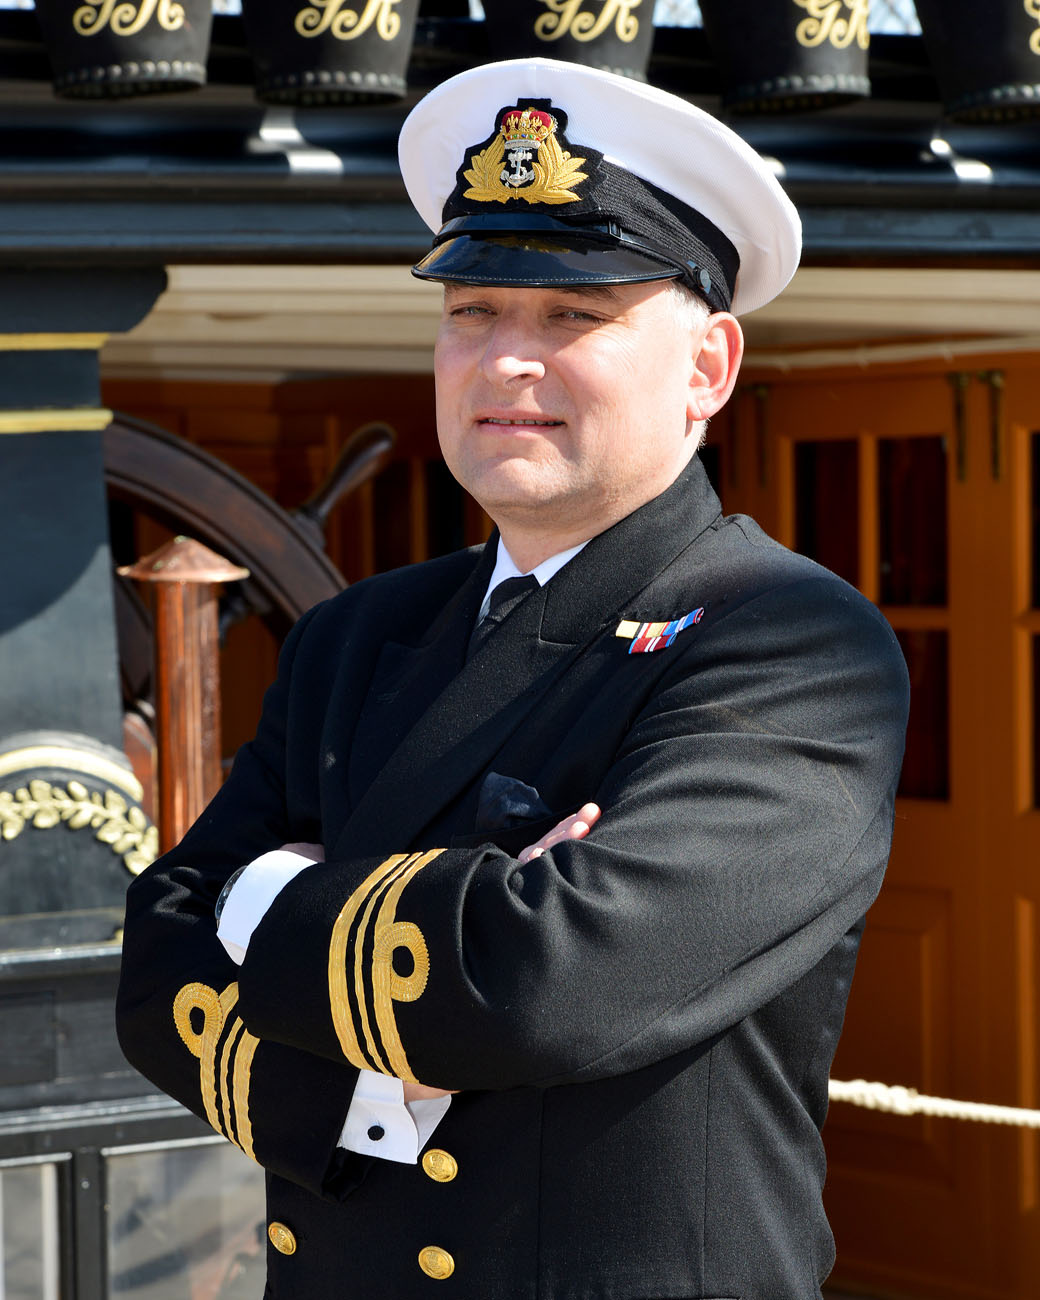 Lieutenant Commander B J Smith, Commanding Officer Of HMS Victory.